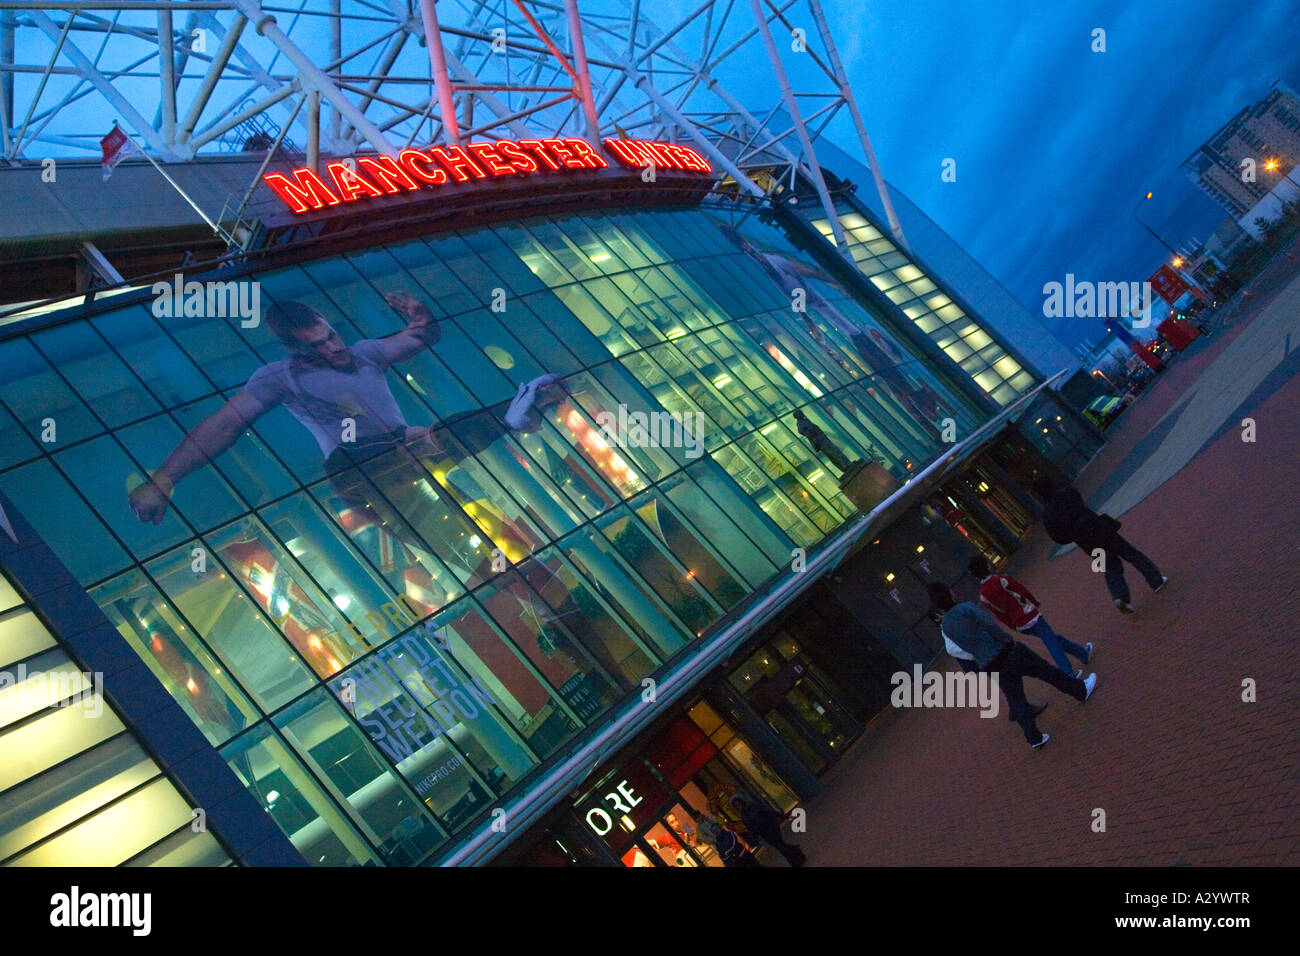 Old Trafford Soccer Stadium Manchester United Football Club home ground Manchester Lancashire England UK United - Stock Image